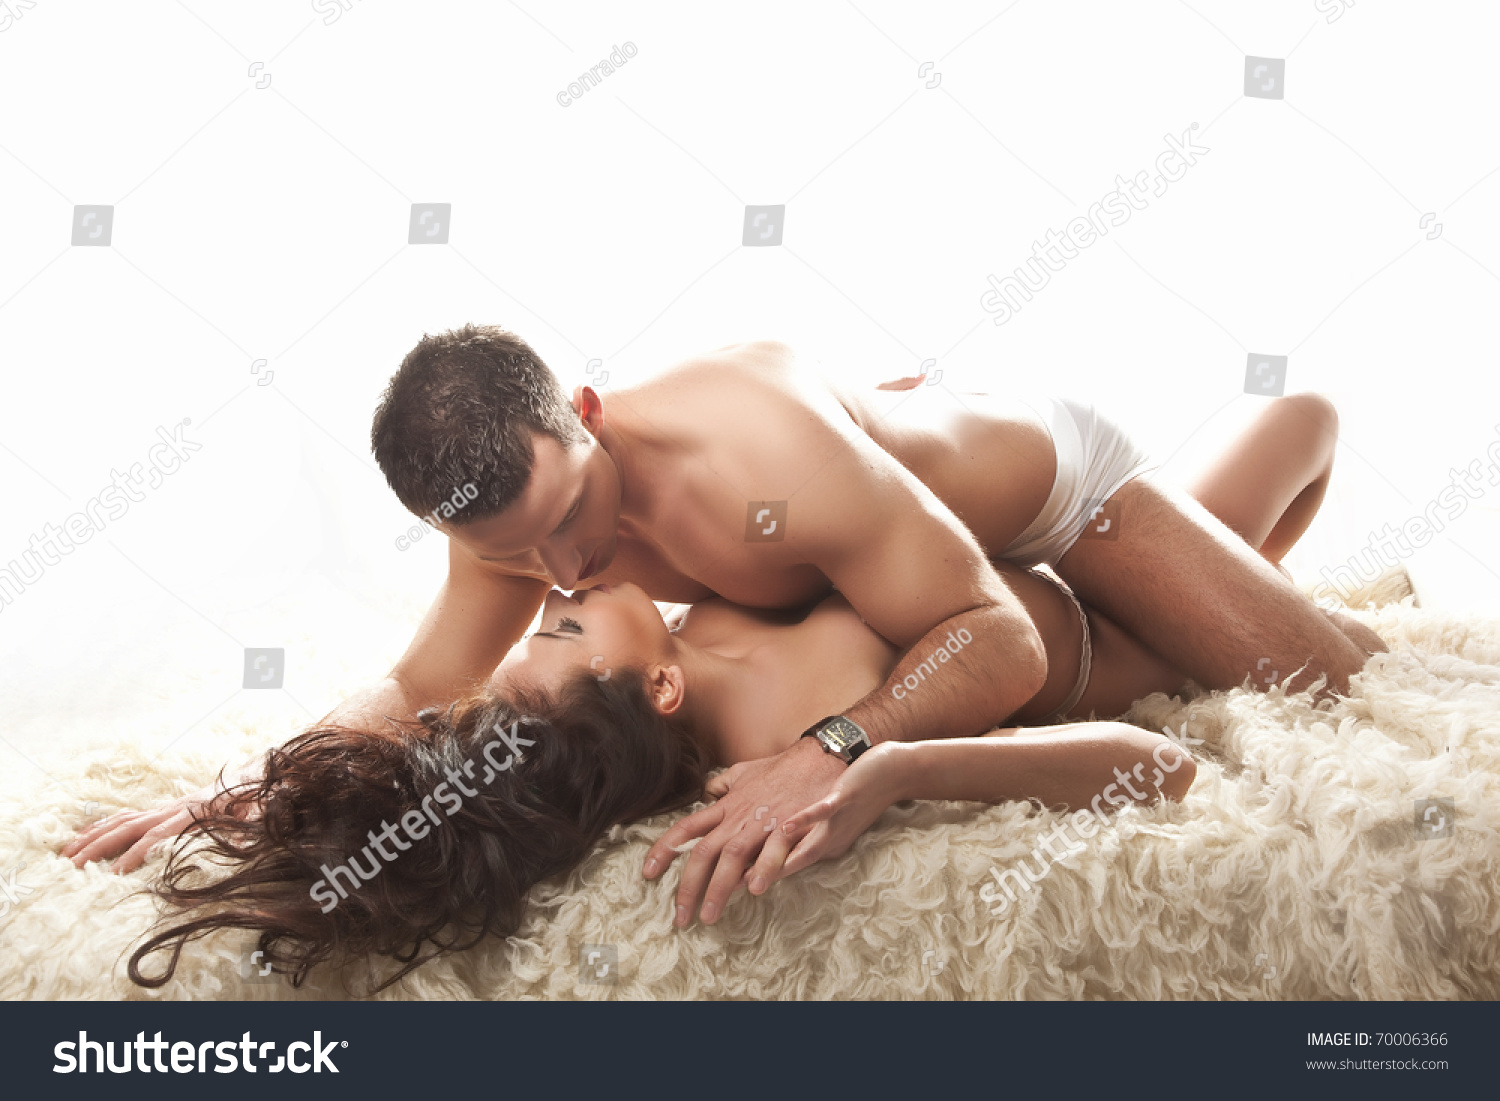 Sexual Nude Couple Poses-7083